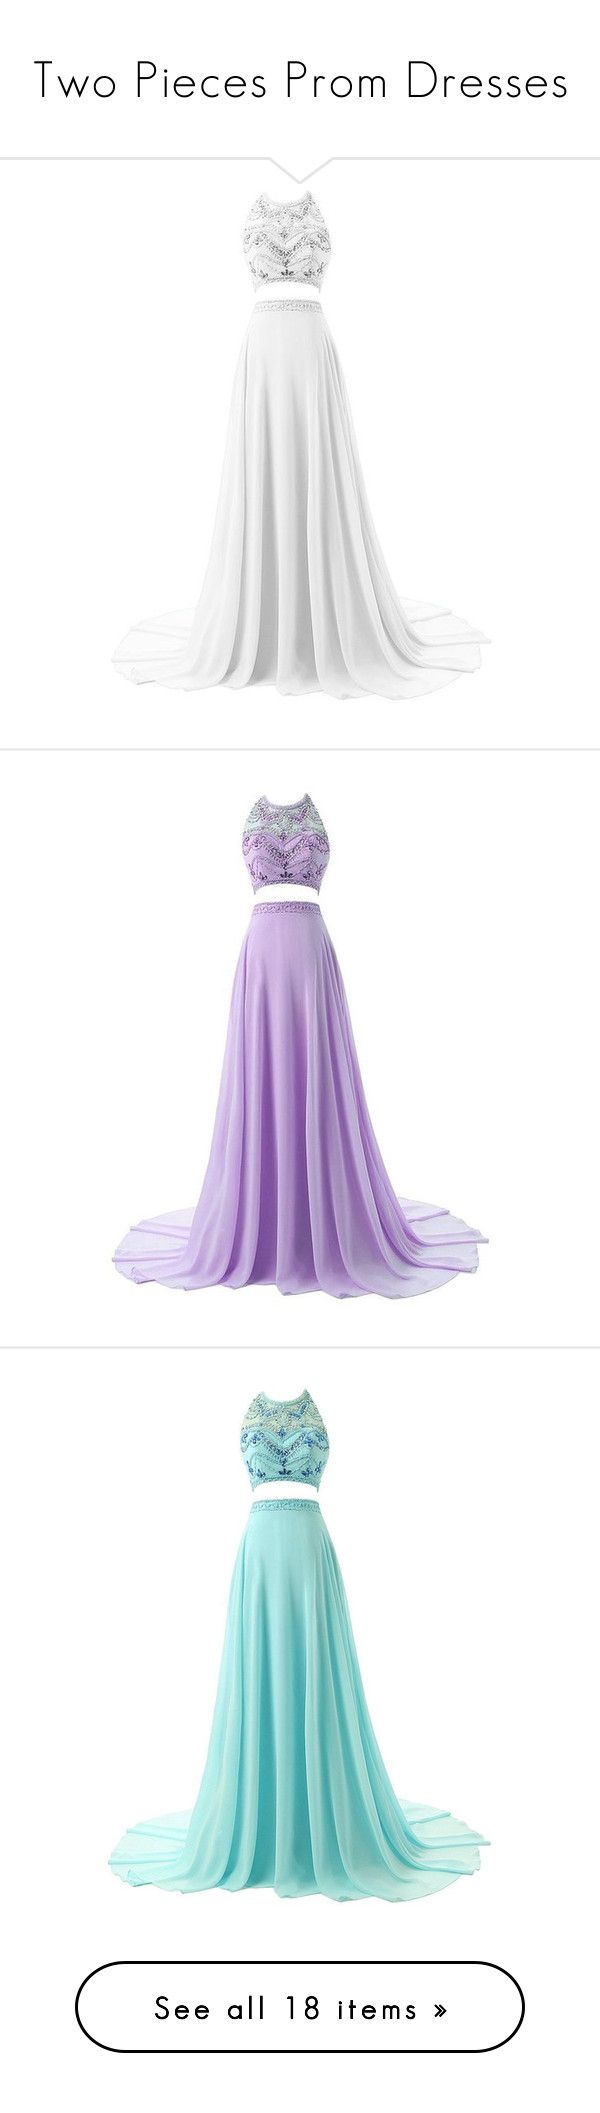 """""""Two Pieces Prom Dresses"""" by sabrinabriones-10 ❤ liked on Polyvore featuring dresses, gowns, vestidos, 2 piece prom dresses, two piece prom dresses, white evening dresses, beaded prom dresses, white prom gown, purple evening dresses and two piece dresses"""